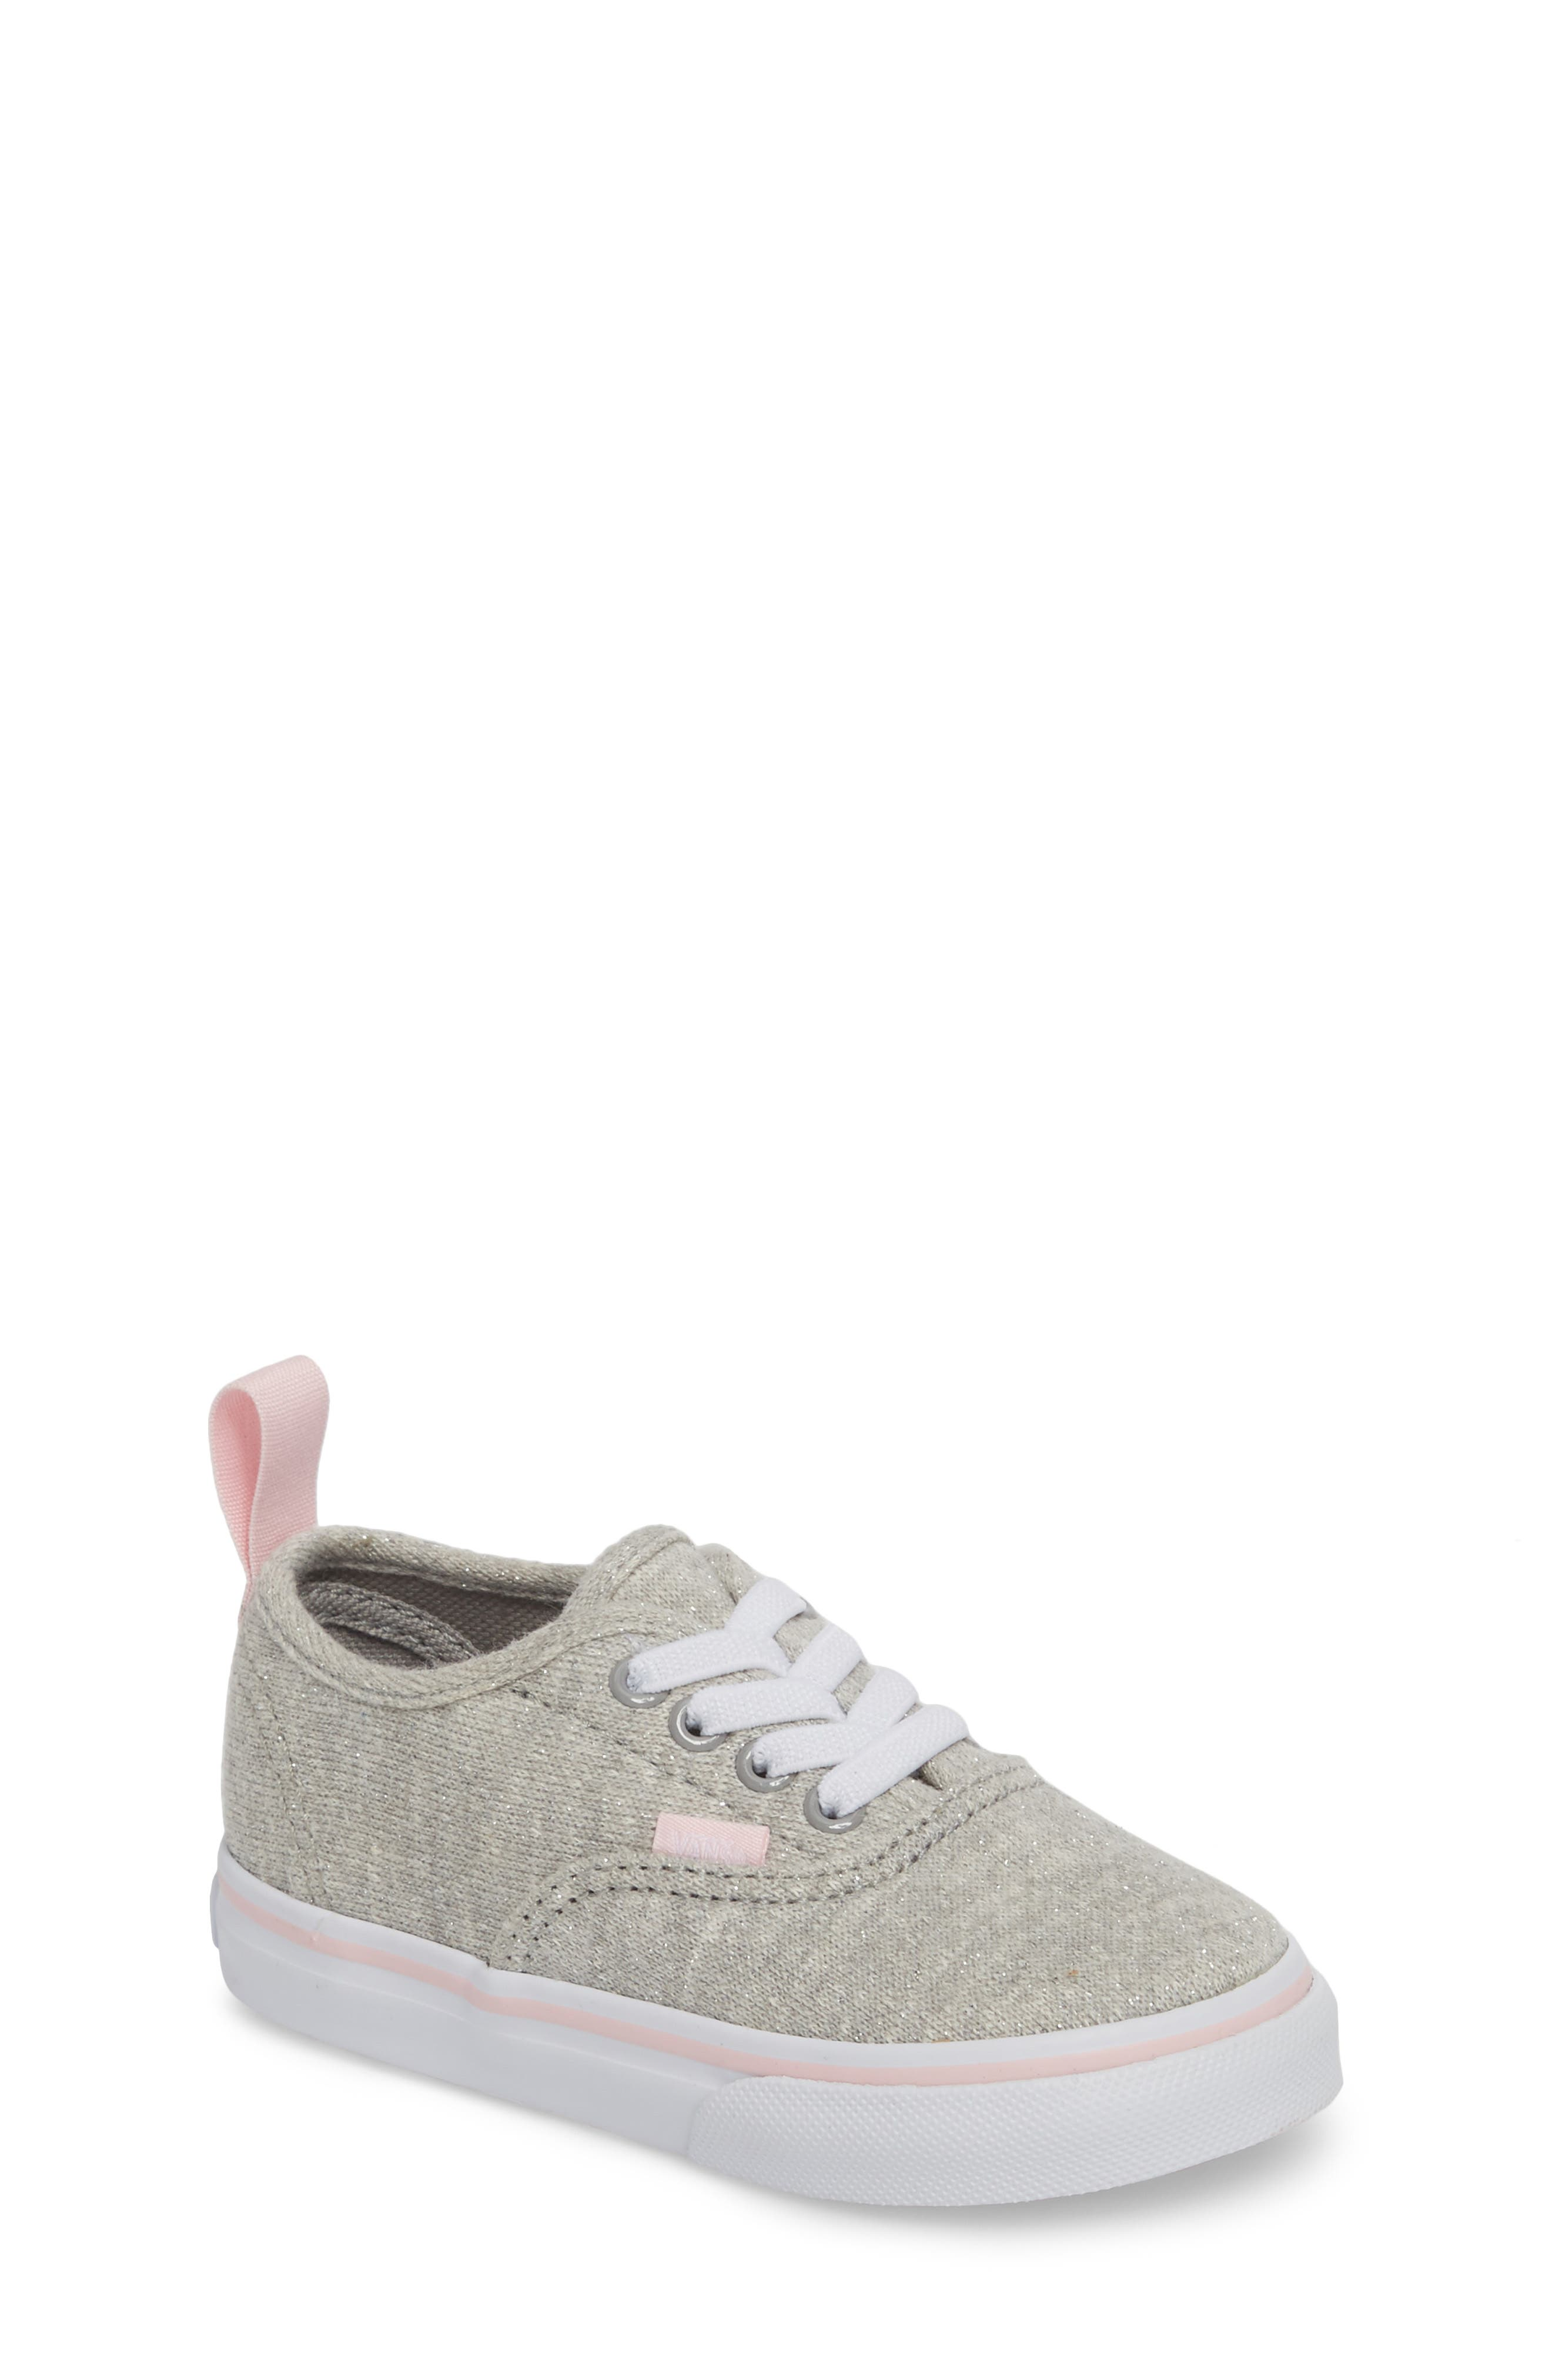 Authentic Glitter Sneaker,                             Main thumbnail 1, color,                             Gray/ Pink Shimmer Jersey